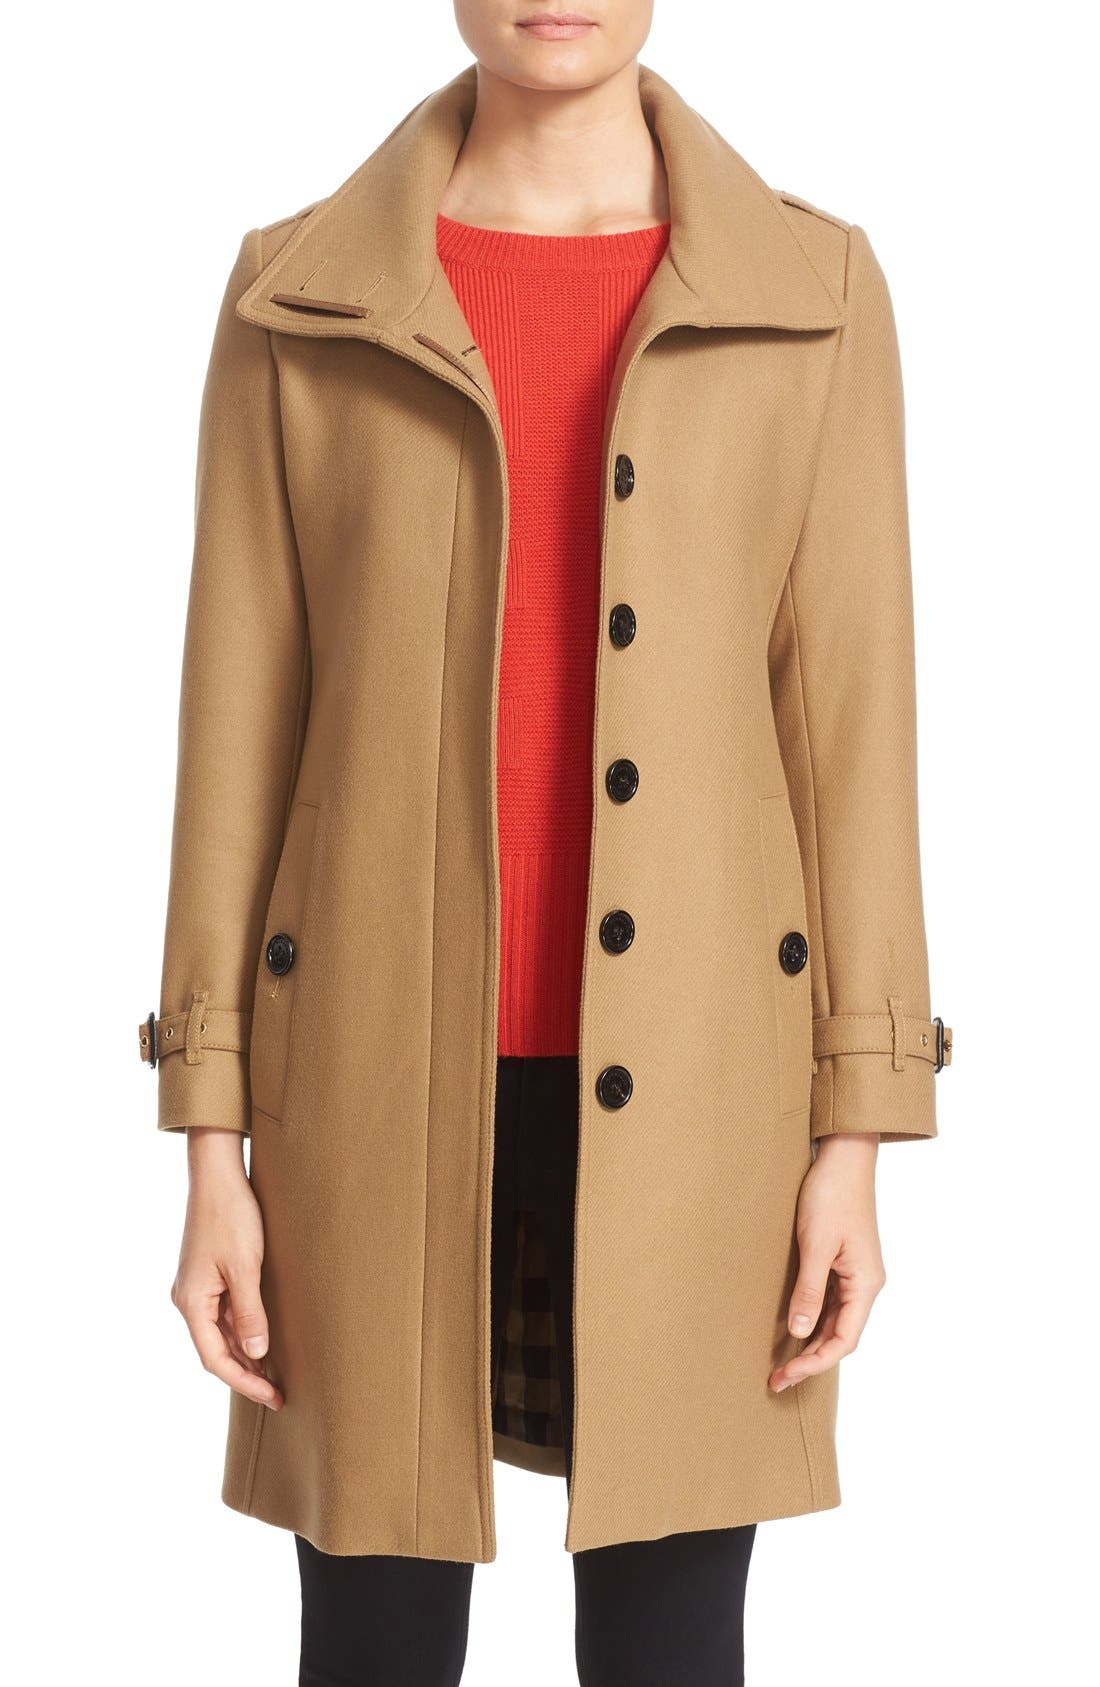 Main Image - Burberry Gibbsmoore Funnel Collar Trench Coat (Nordstrom Exclusive)